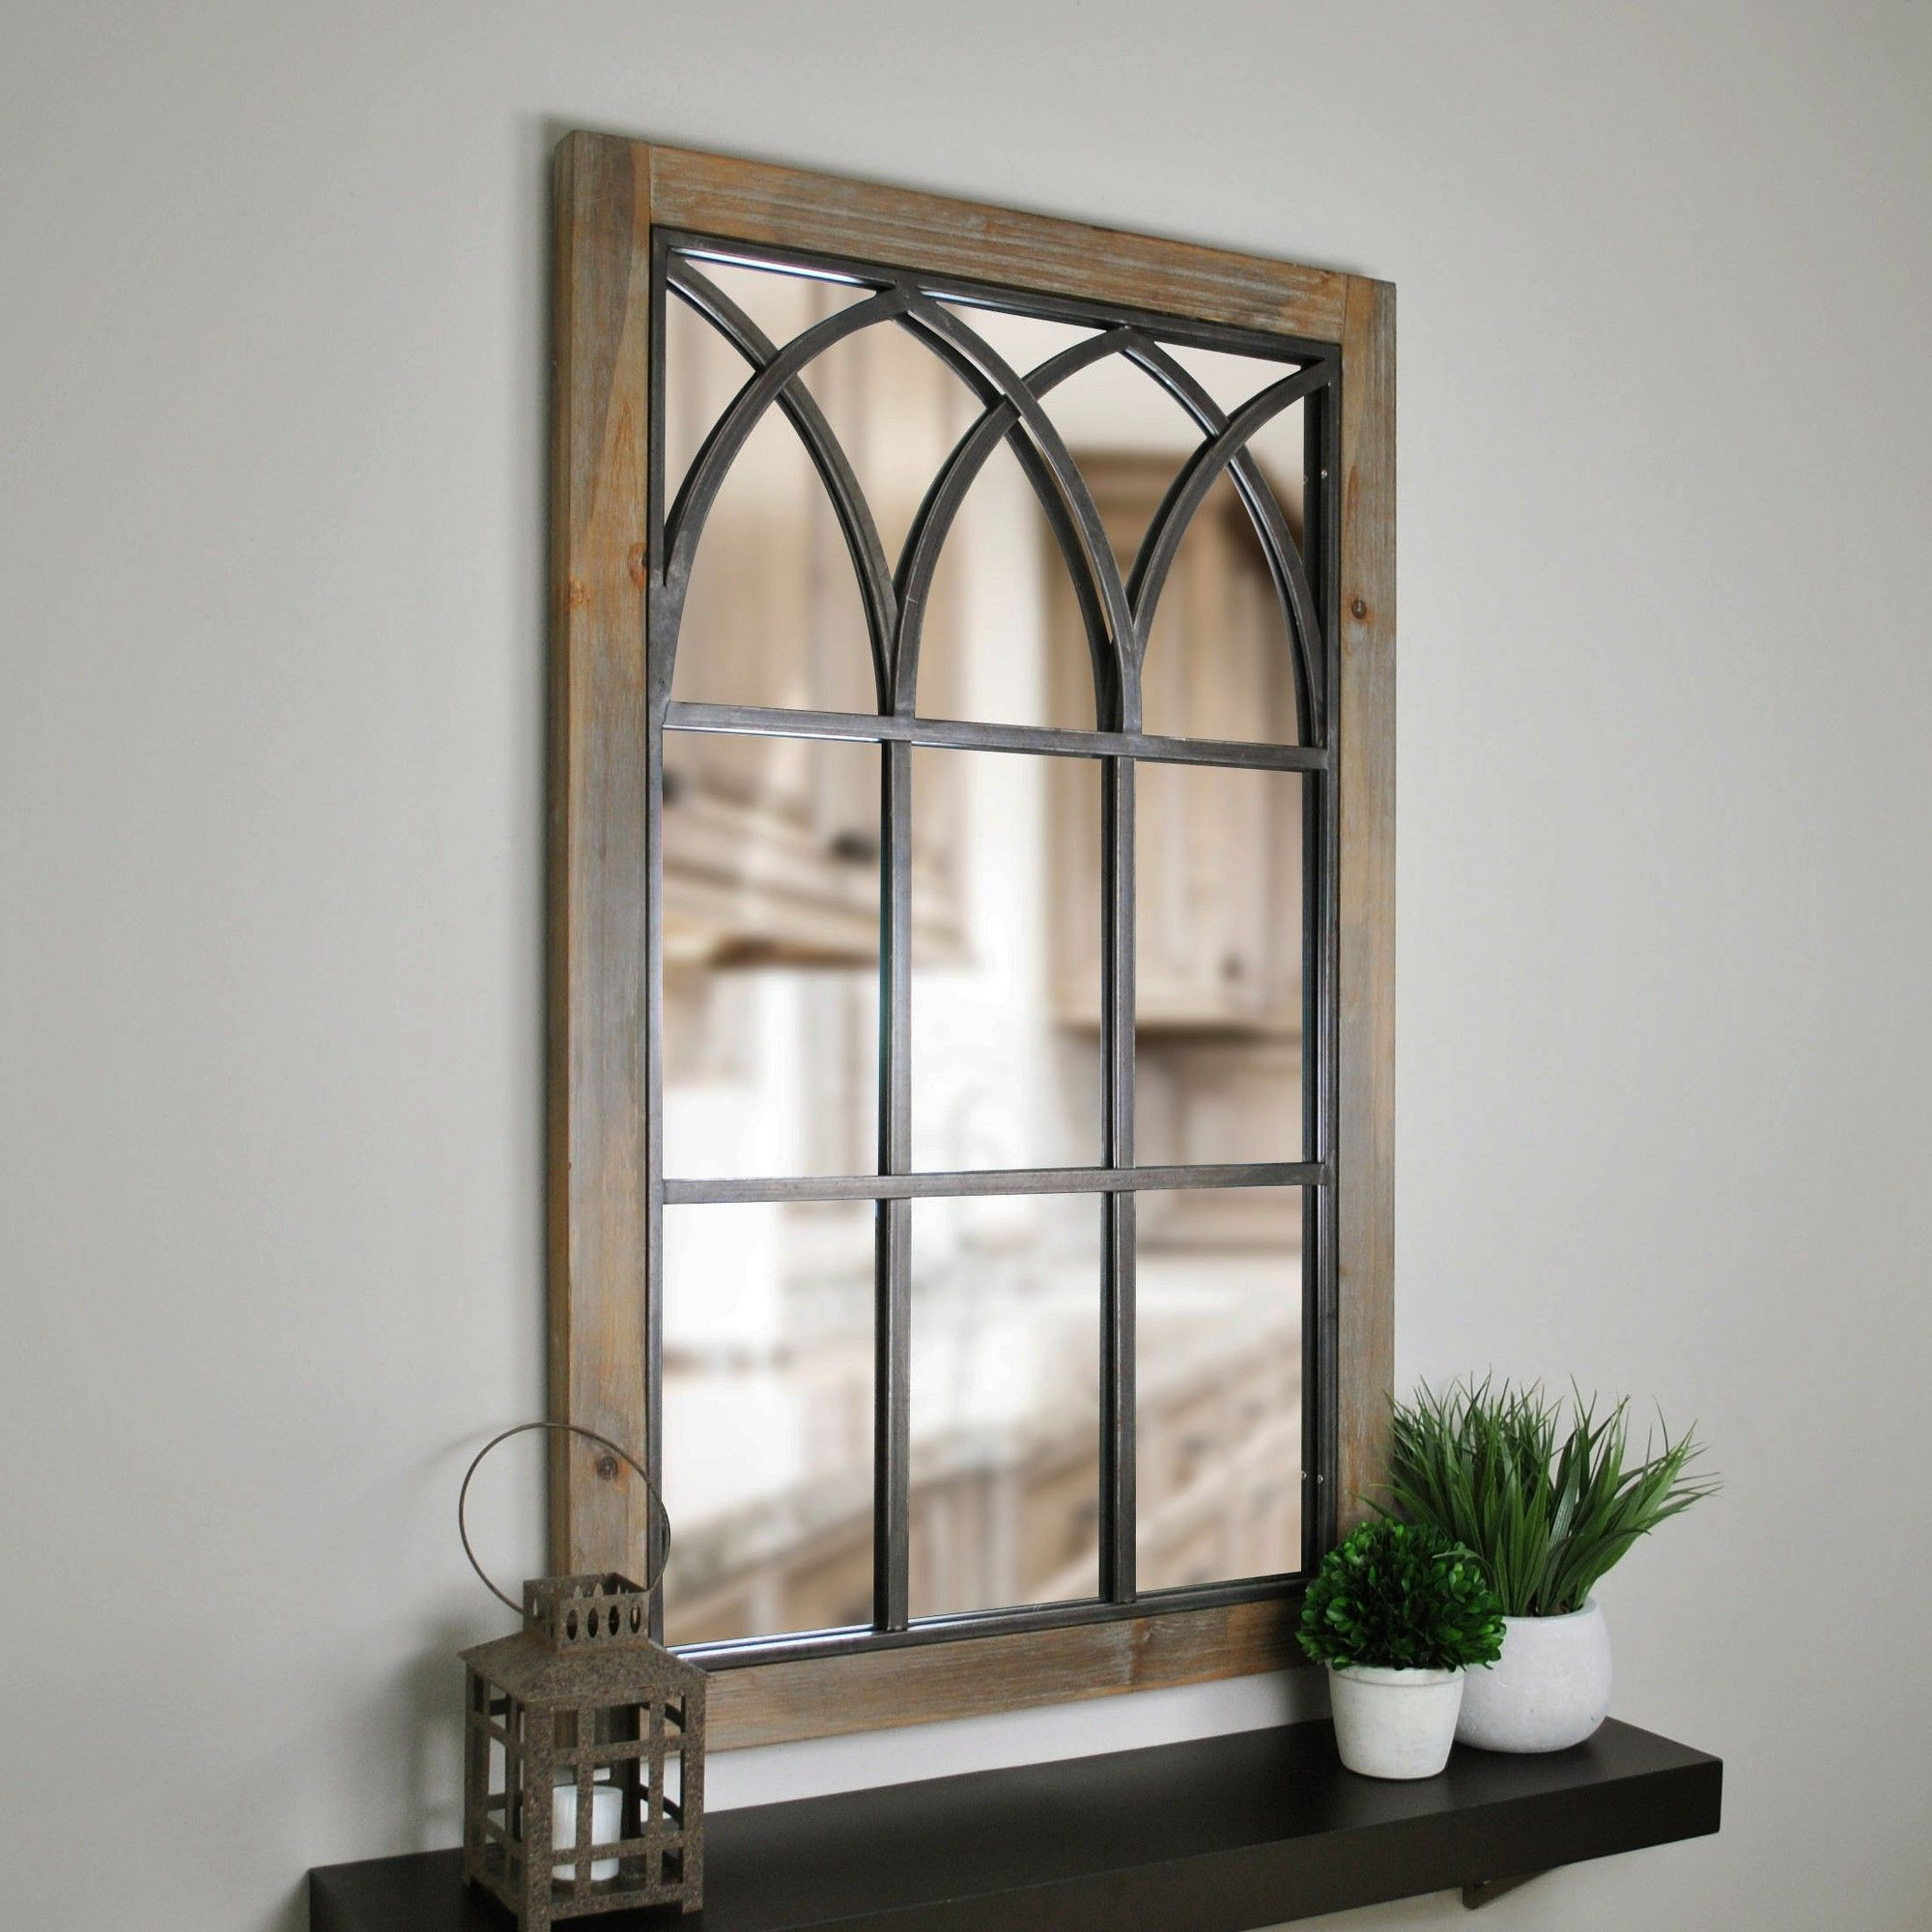 """37.5""""x24"""" Grandview Arched Window Mirror Brown - Firstime In within Polito Cottage/country Wall Mirrors (Image 1 of 30)"""